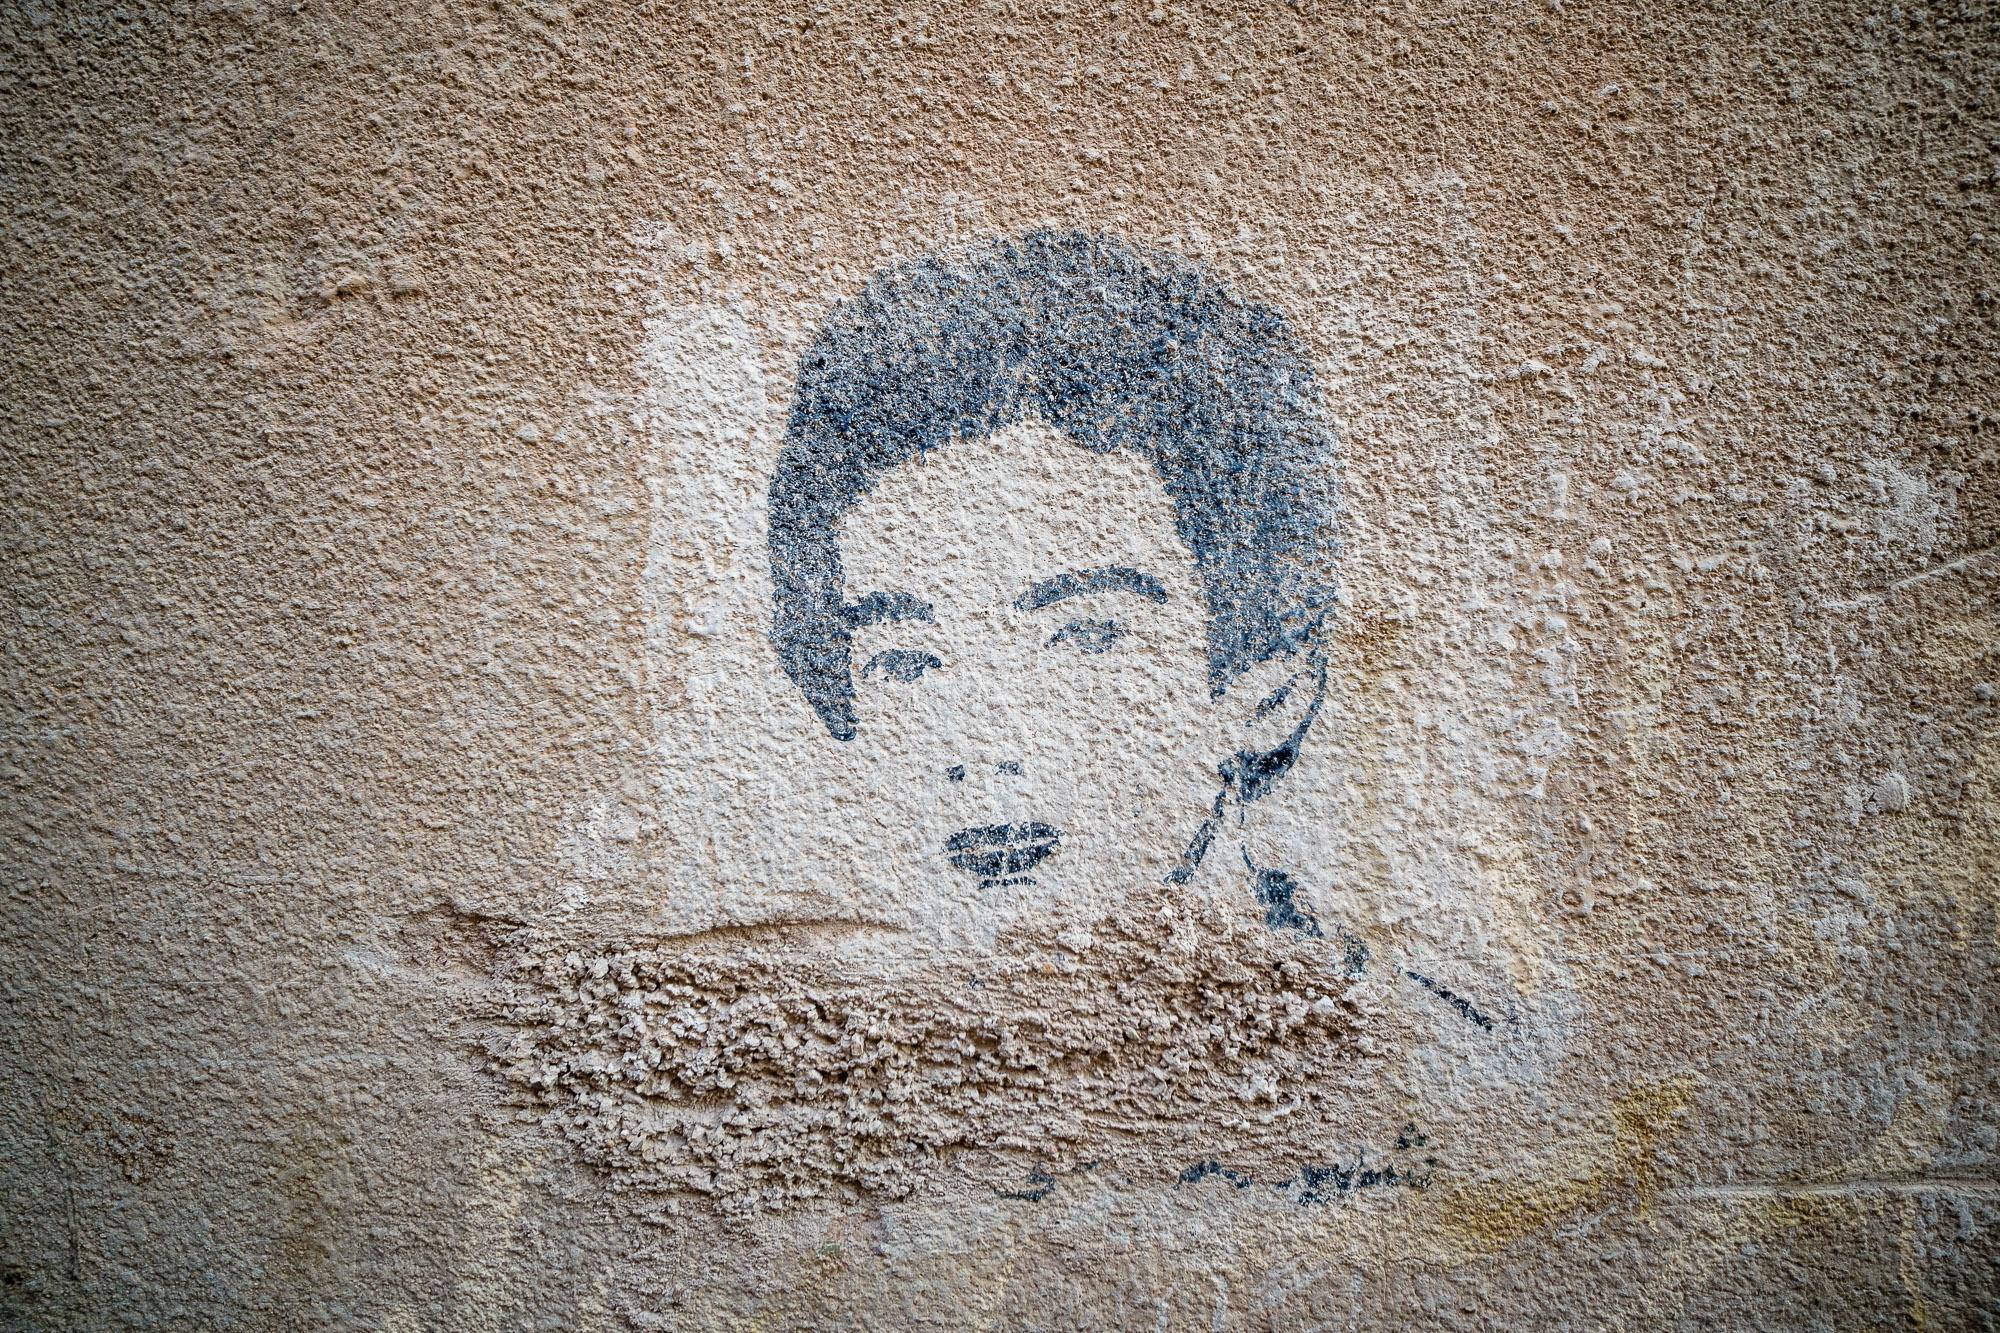 graffito in Shiraz